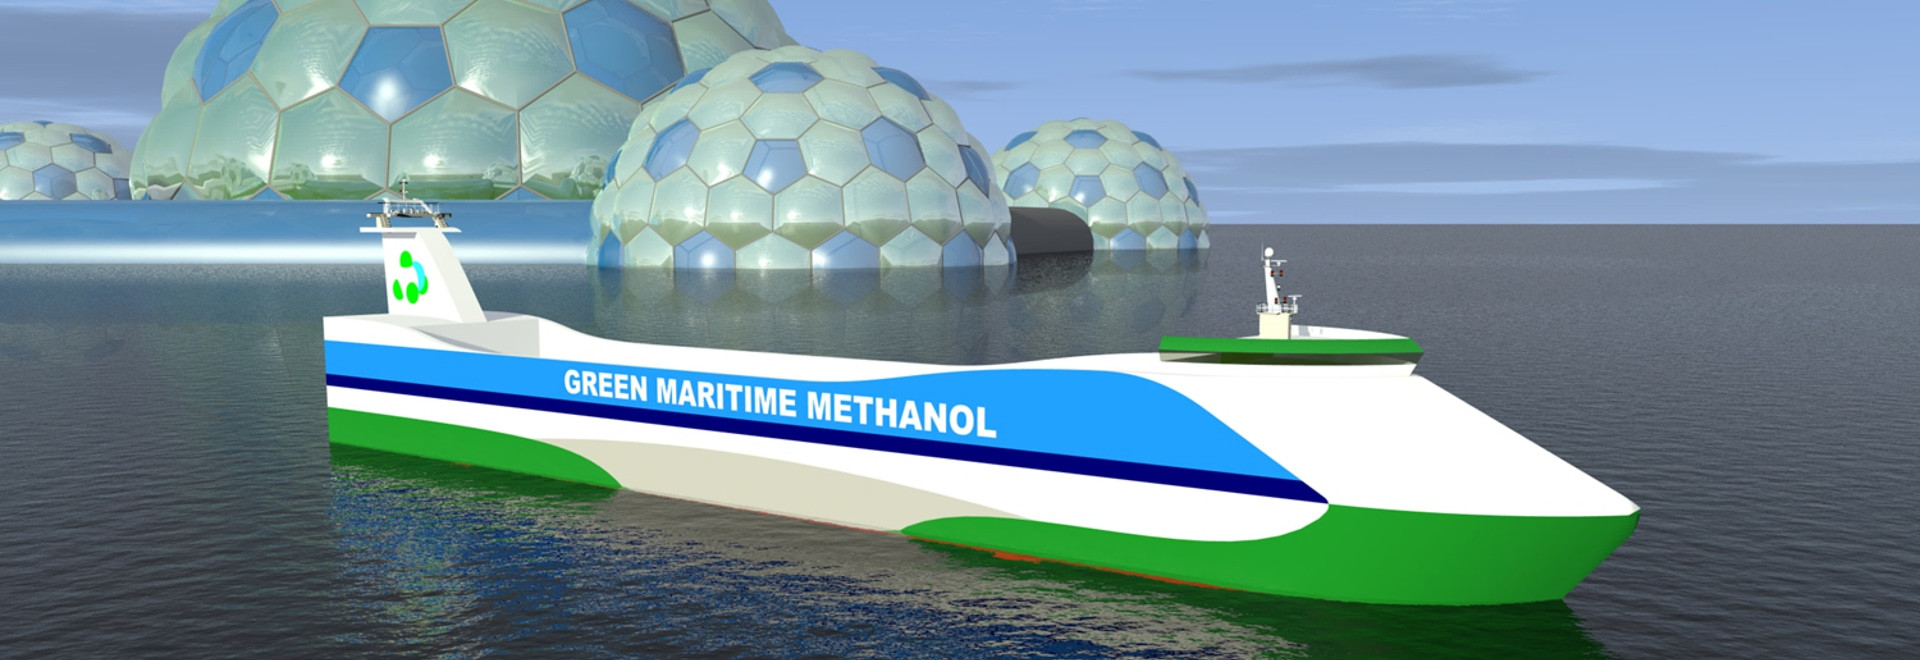 Dutch shipyards investigate sustainable fuel alternative